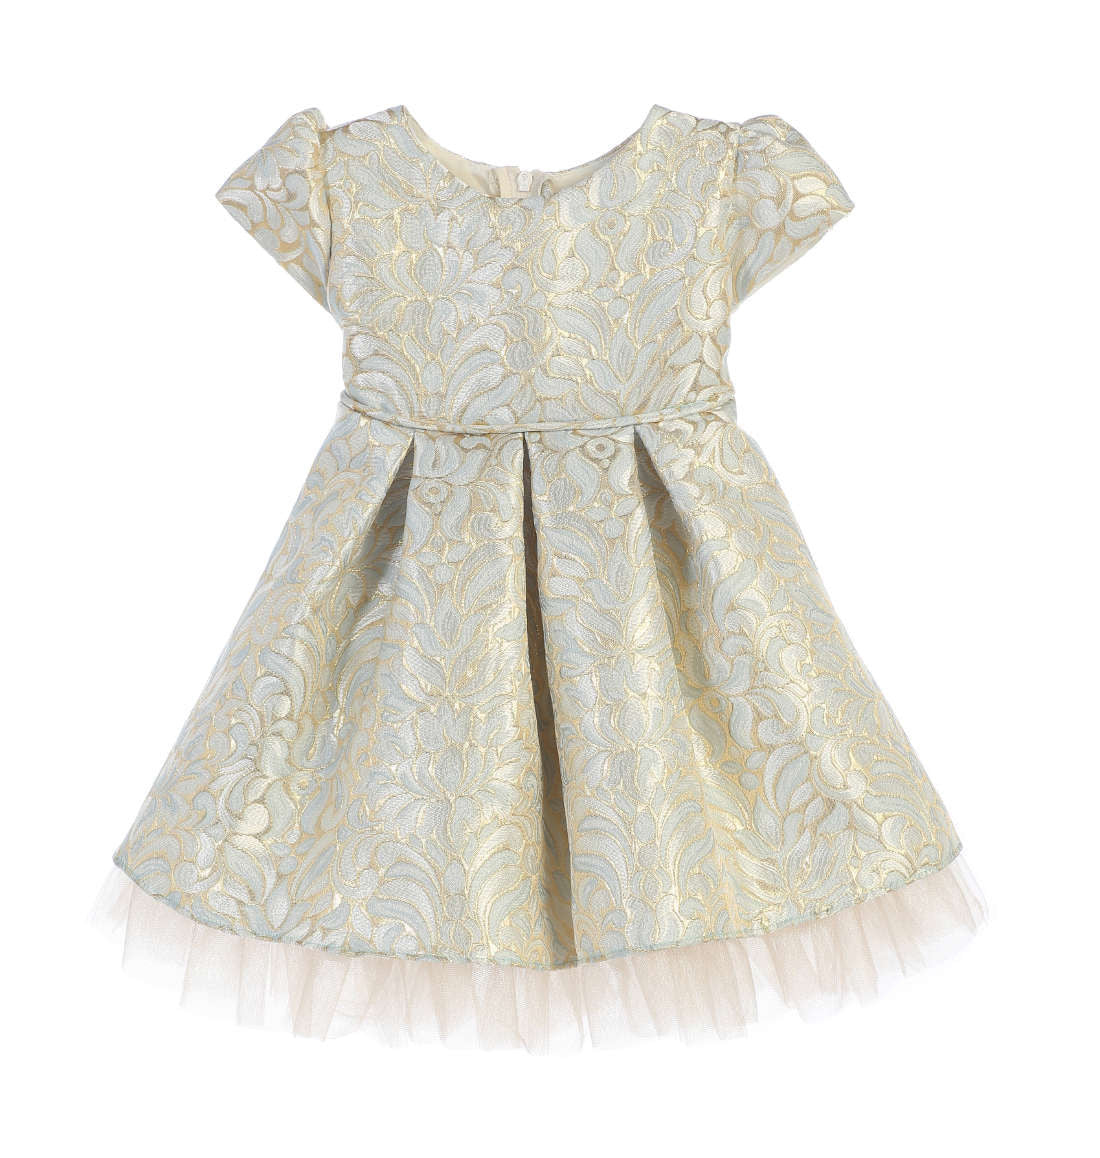 Sweet Kids Ornate Pleated Jacquard Tulle Dress - Blue, SK670